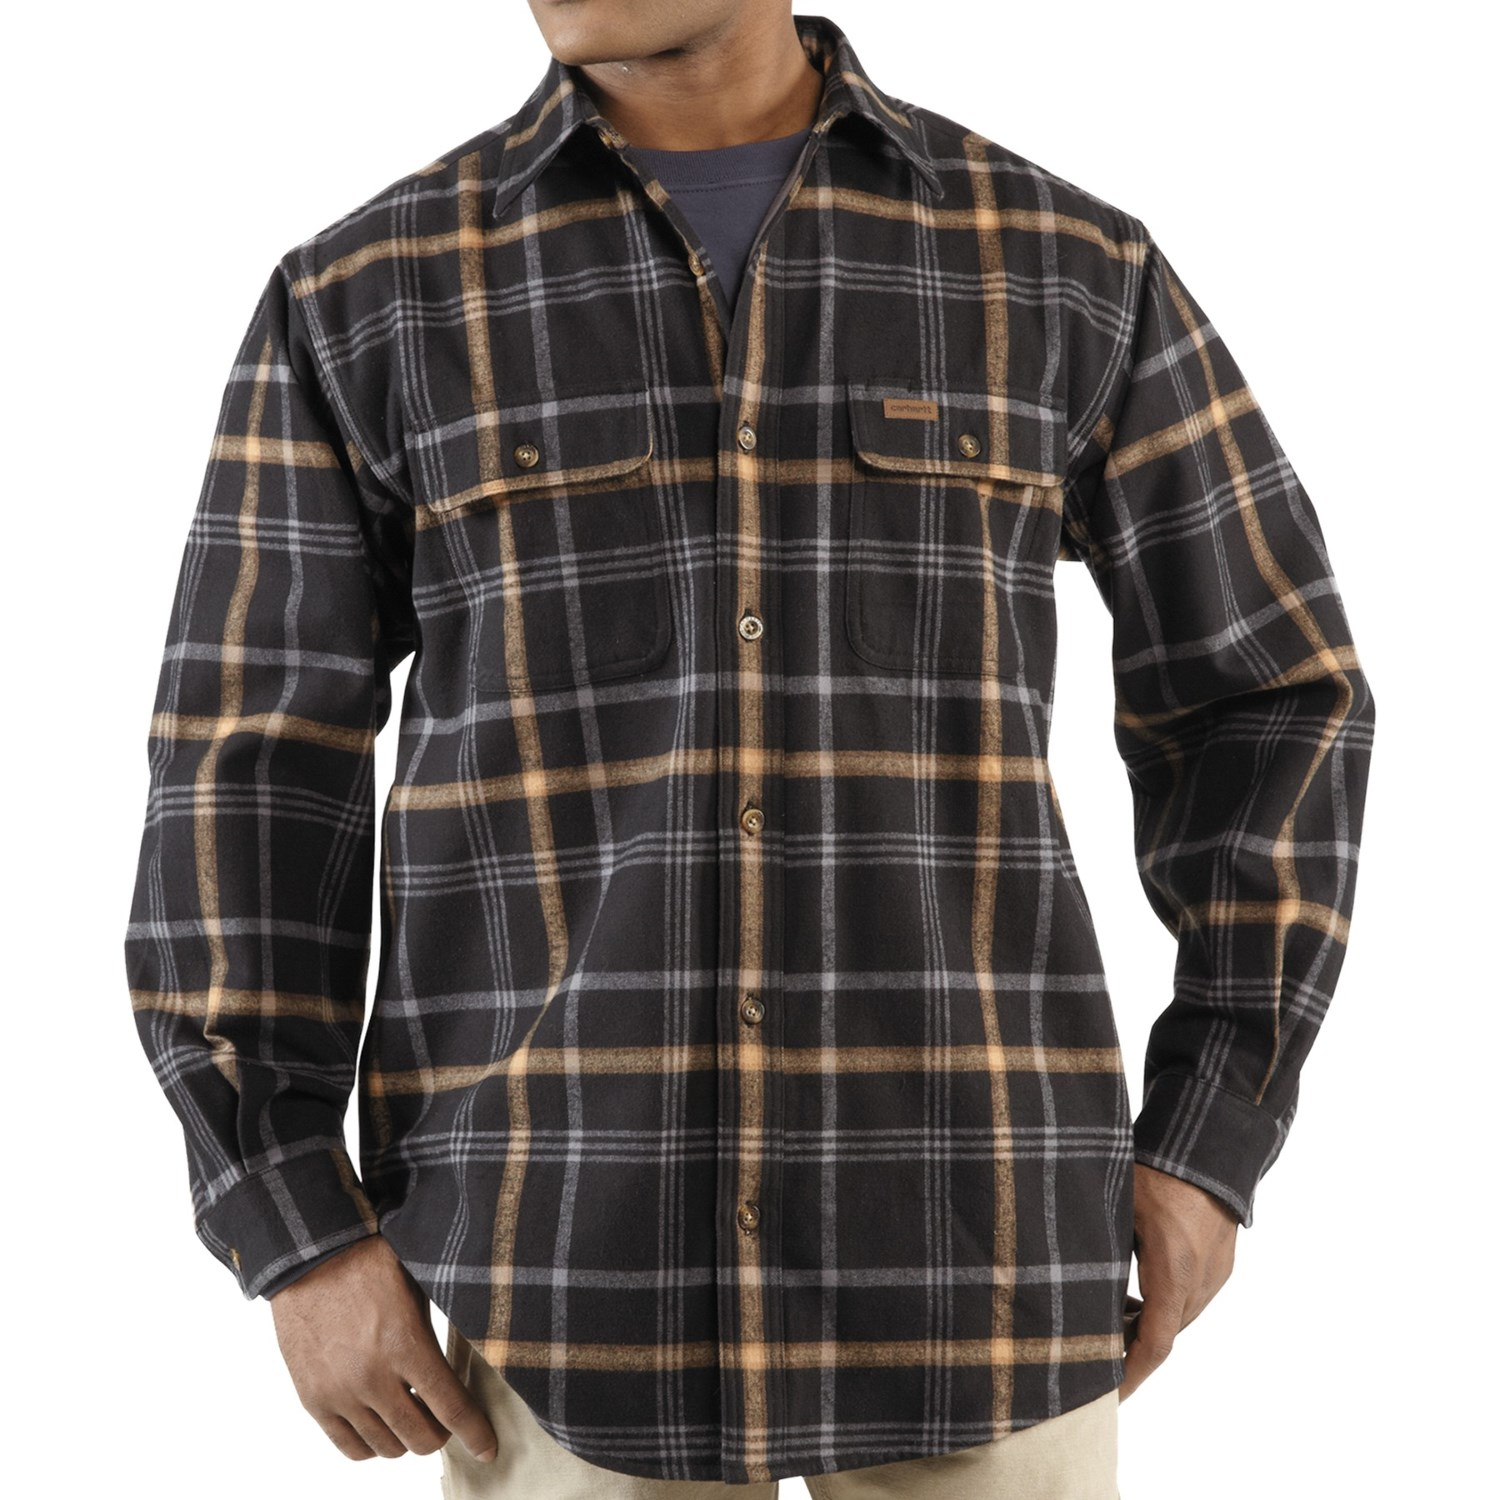 Carhartt youngstown flannel shirt jacket for men 5623n for Flannel shirt and vest